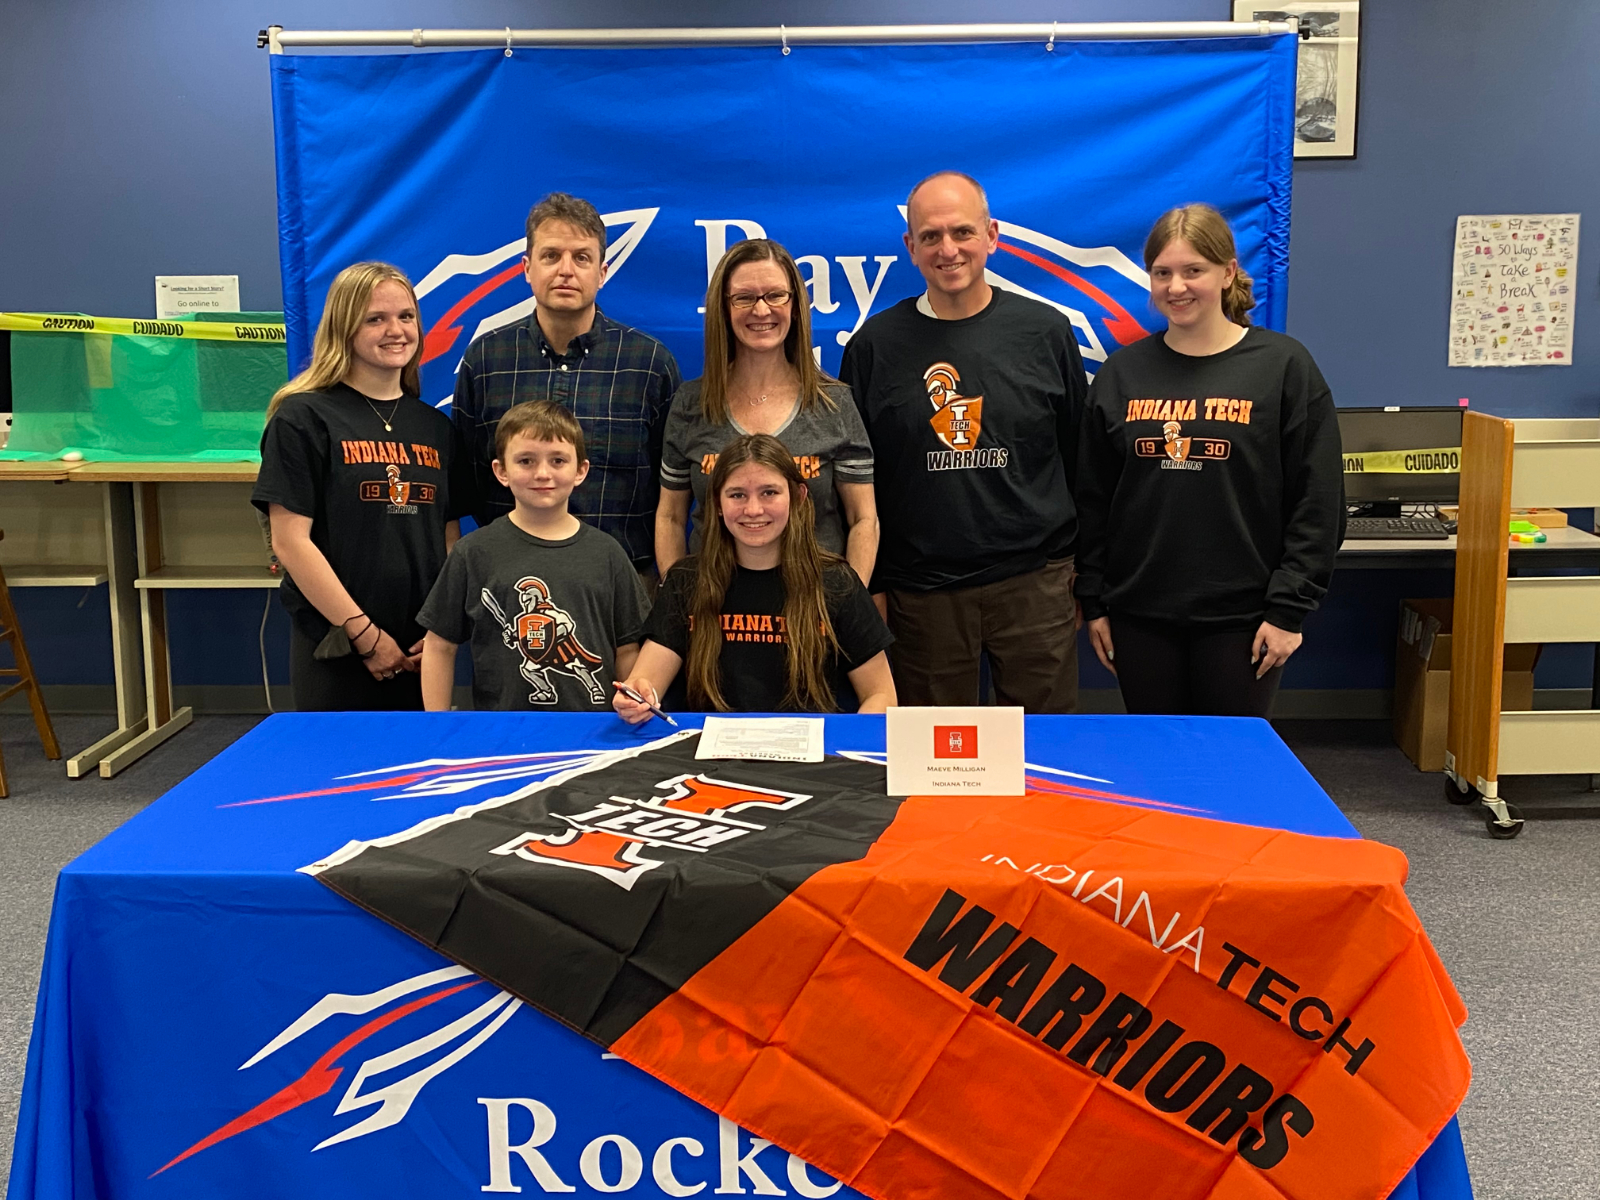 Maeve Milligan Commits to Indiana Tech University